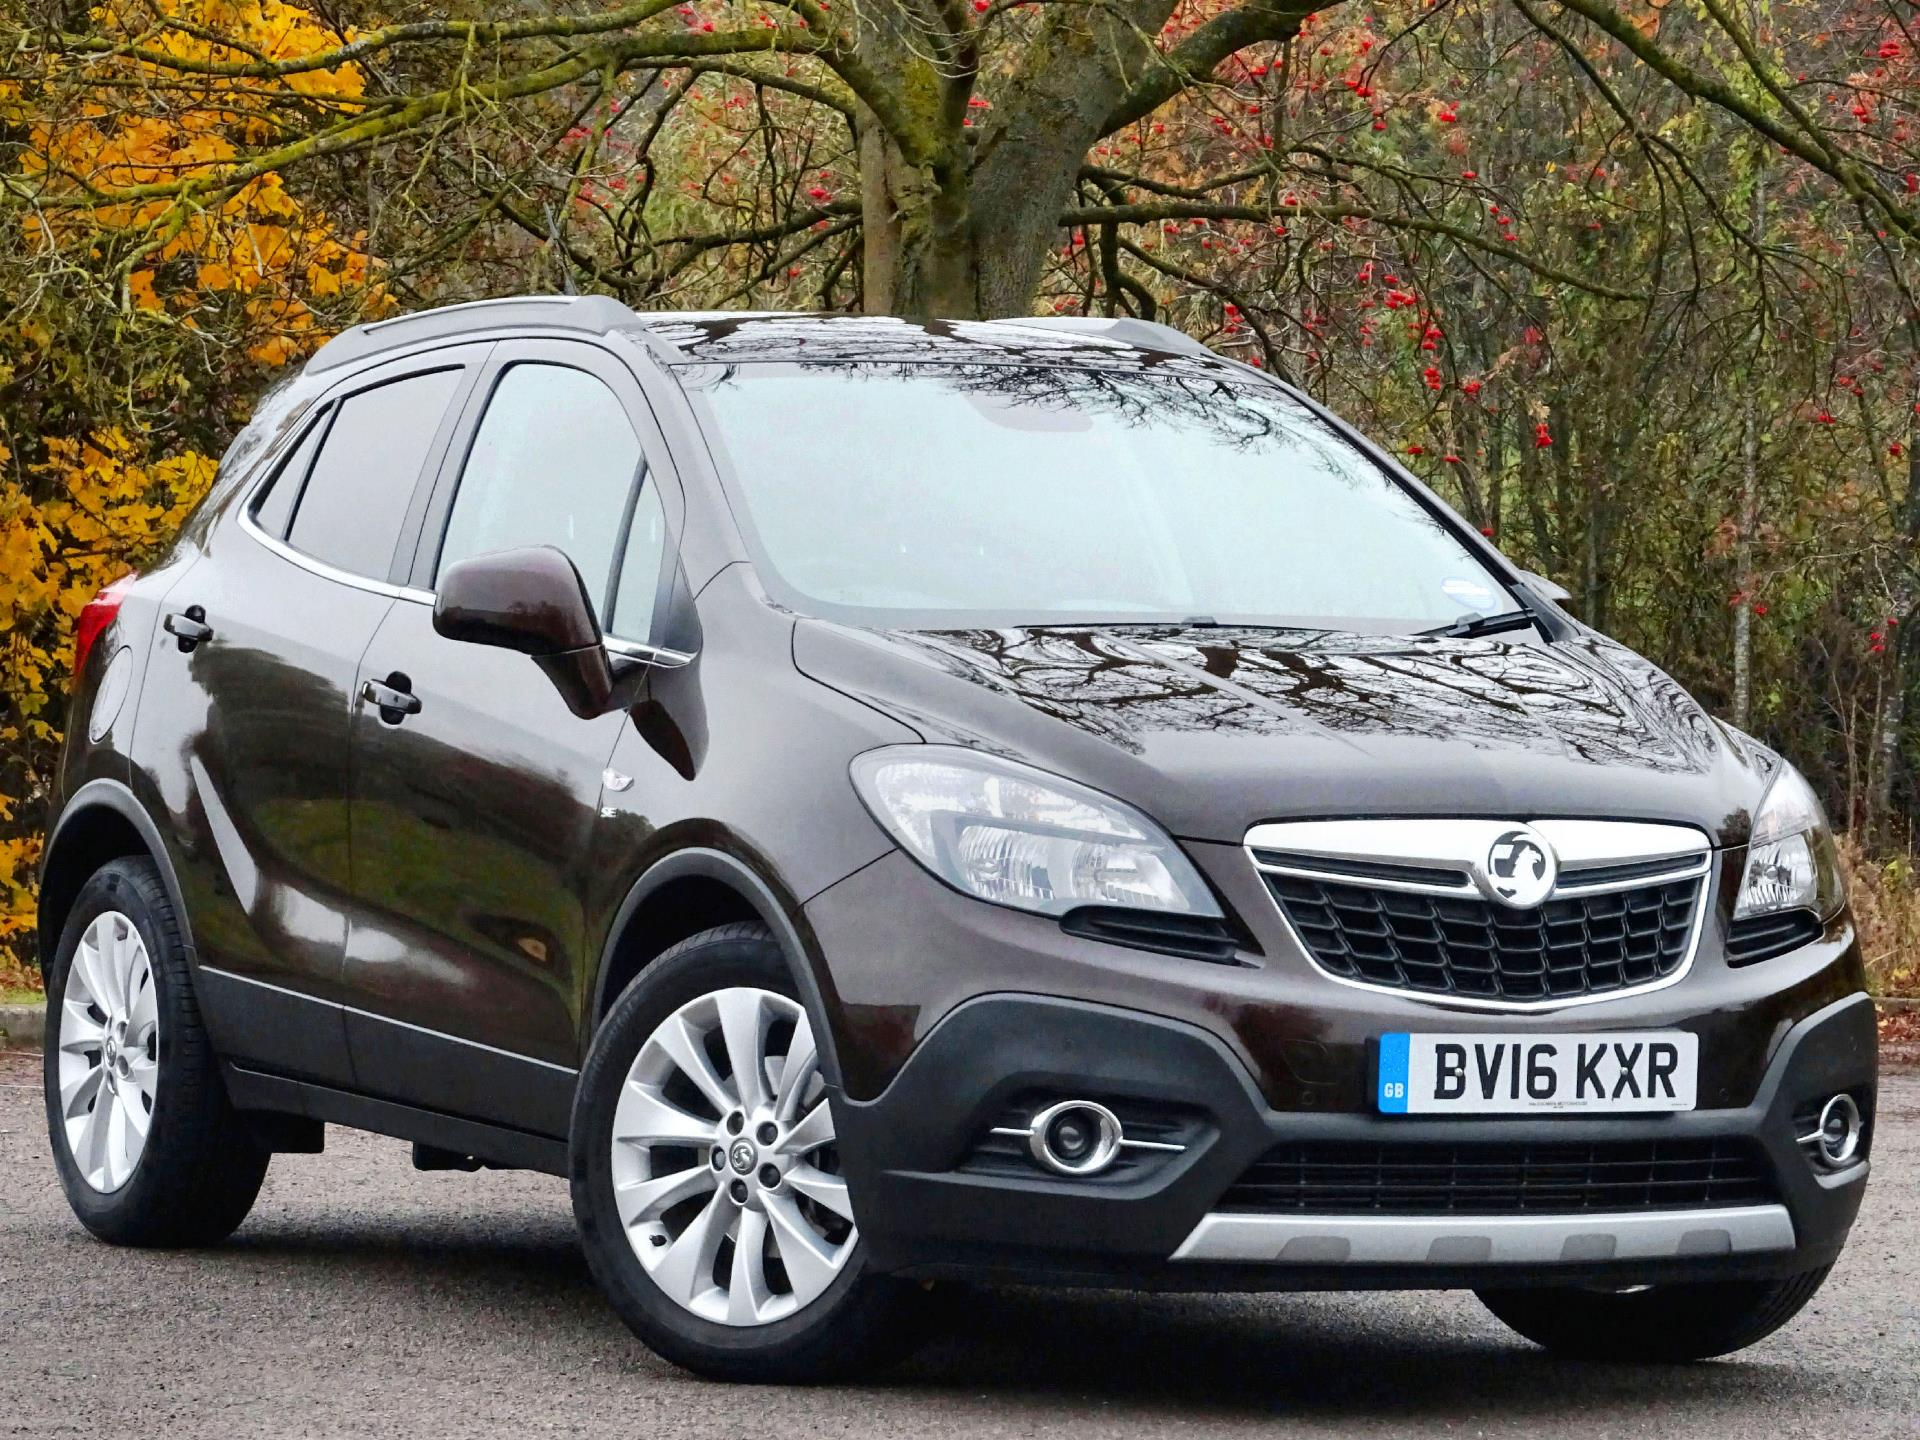 Large photo 1 for 2016/16 VAUXHALL MOKKA/16 VAUXHALL MOKKA 1.4 TURBO SE * 4X4 *FFSH* BLUETOOTH *FULL LEATHER* PARKING SENSORS *DAB*